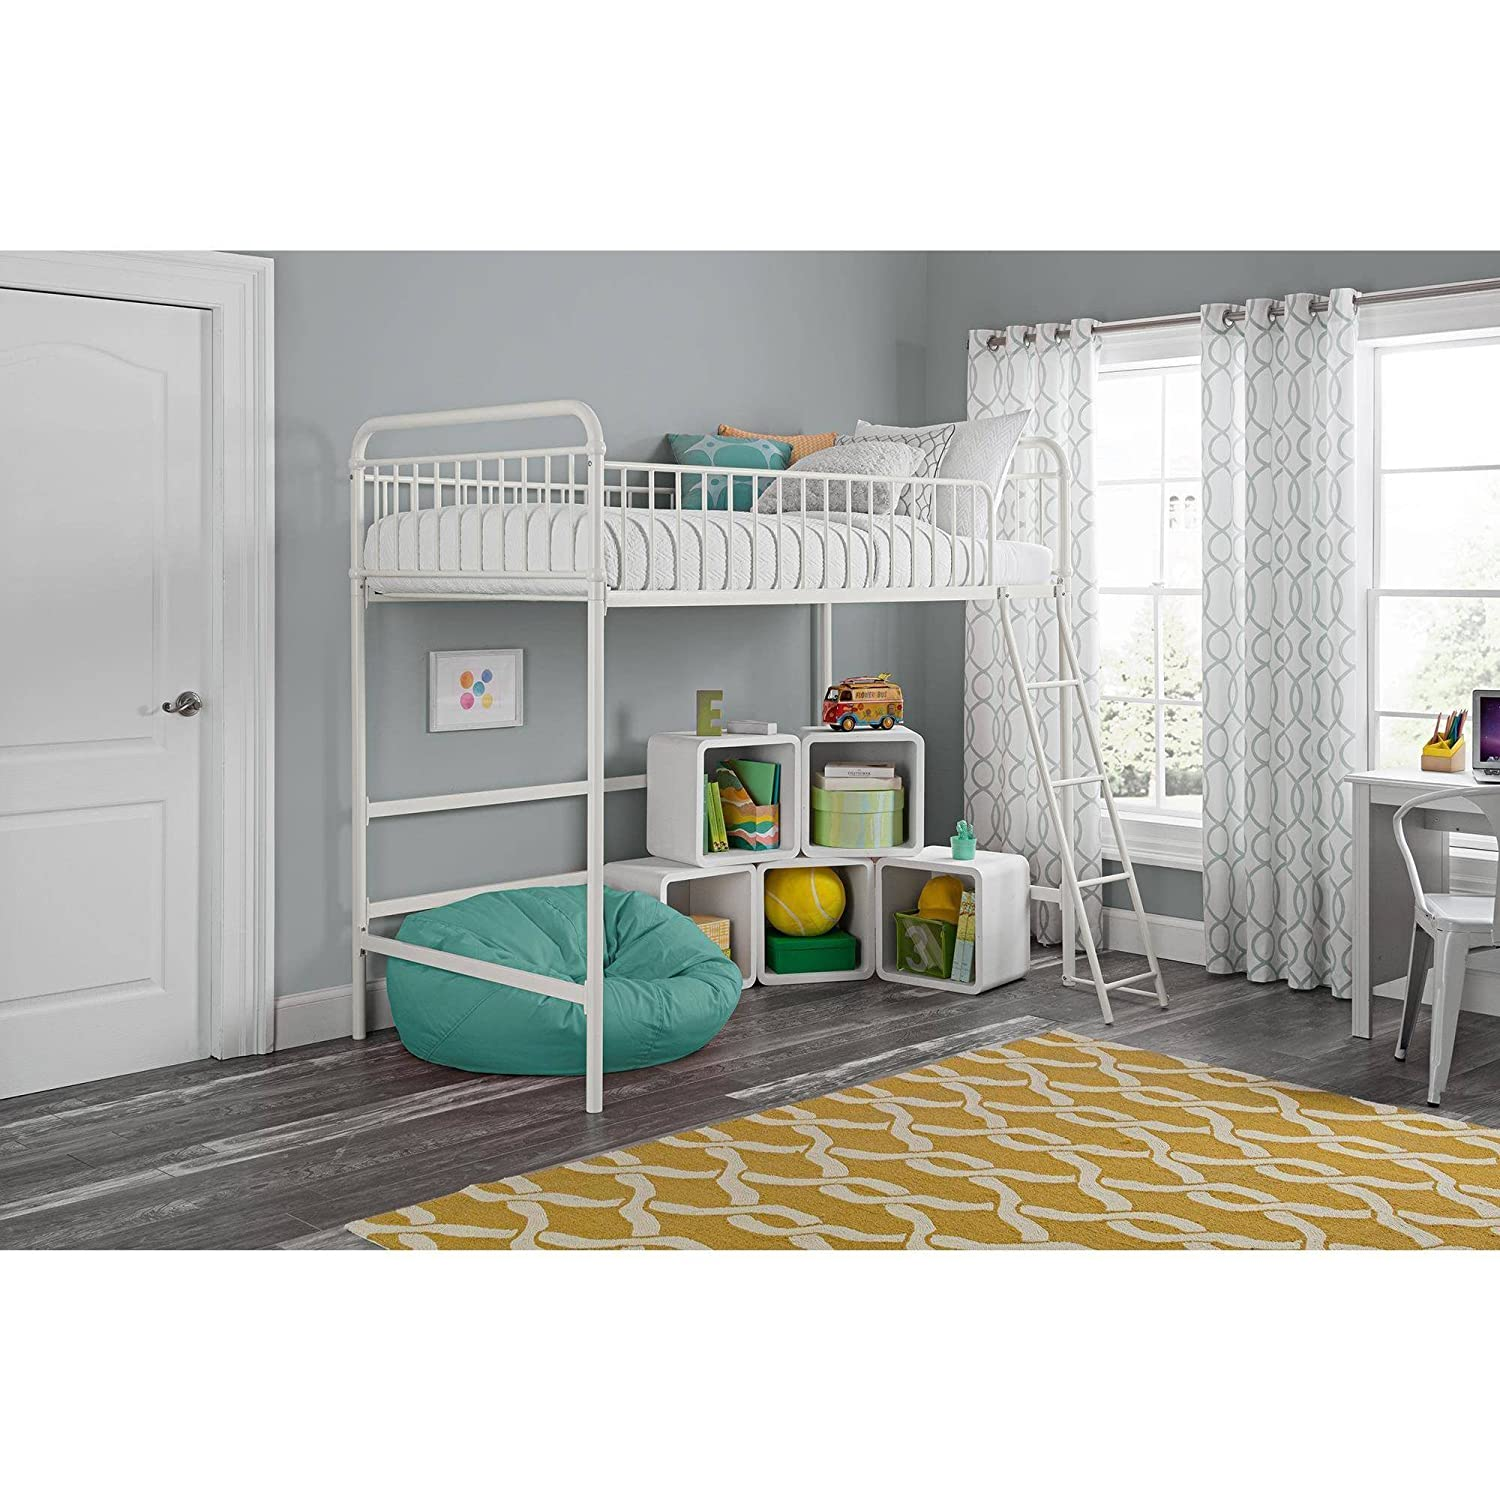 Better Homes and Gardens Kelsey Twin Metal Loft Bed, Sturdy metal frame with secure guardrails and ladder White